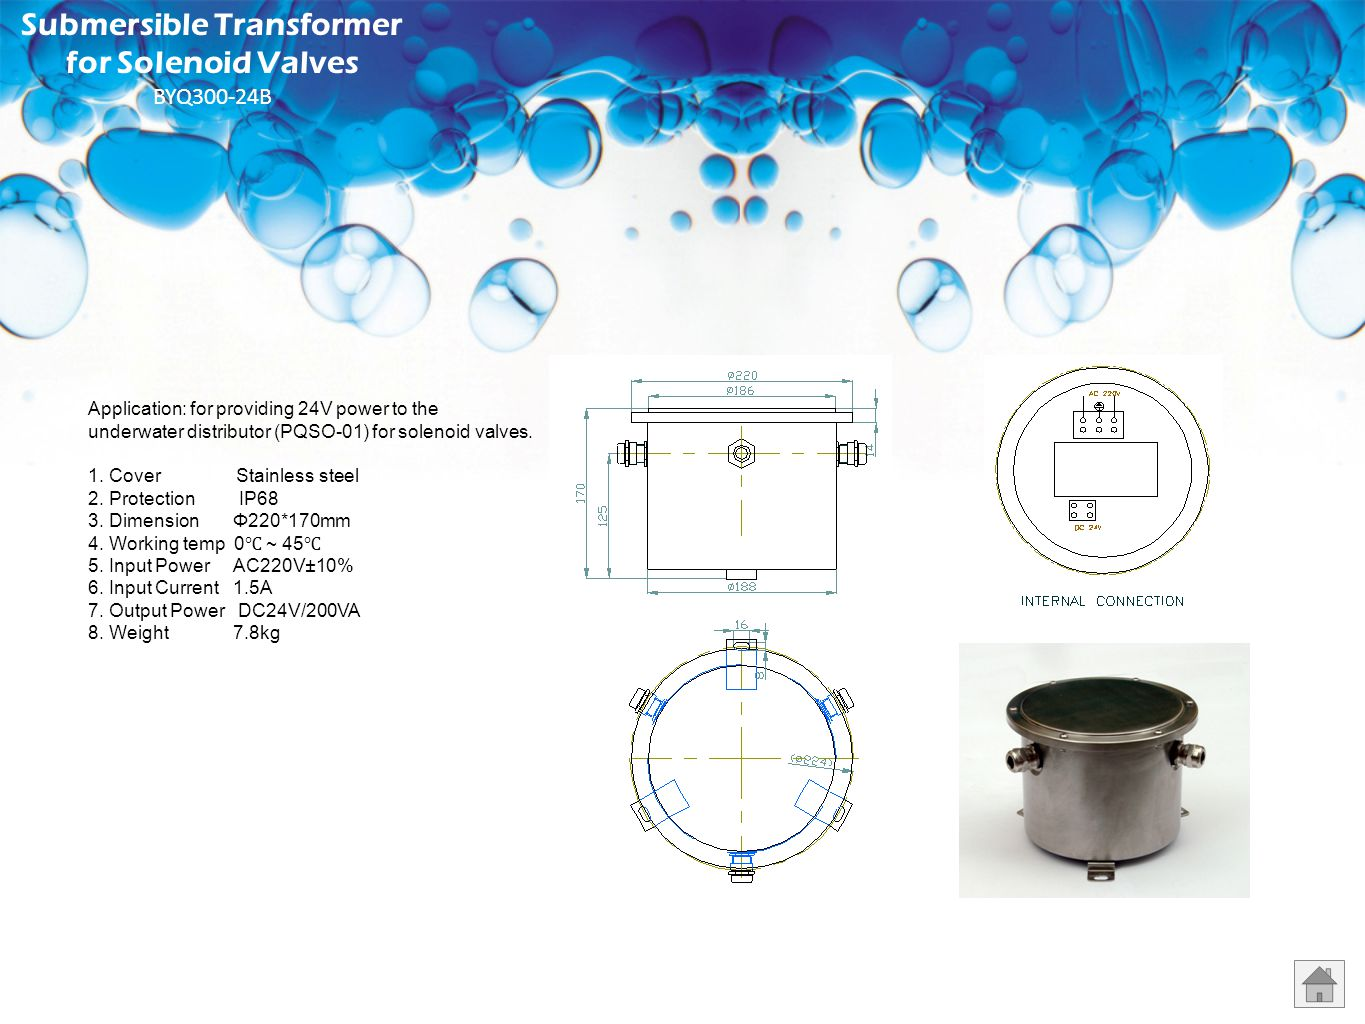 Submersible Transformer for Solenoid Valves BYQ300-24B